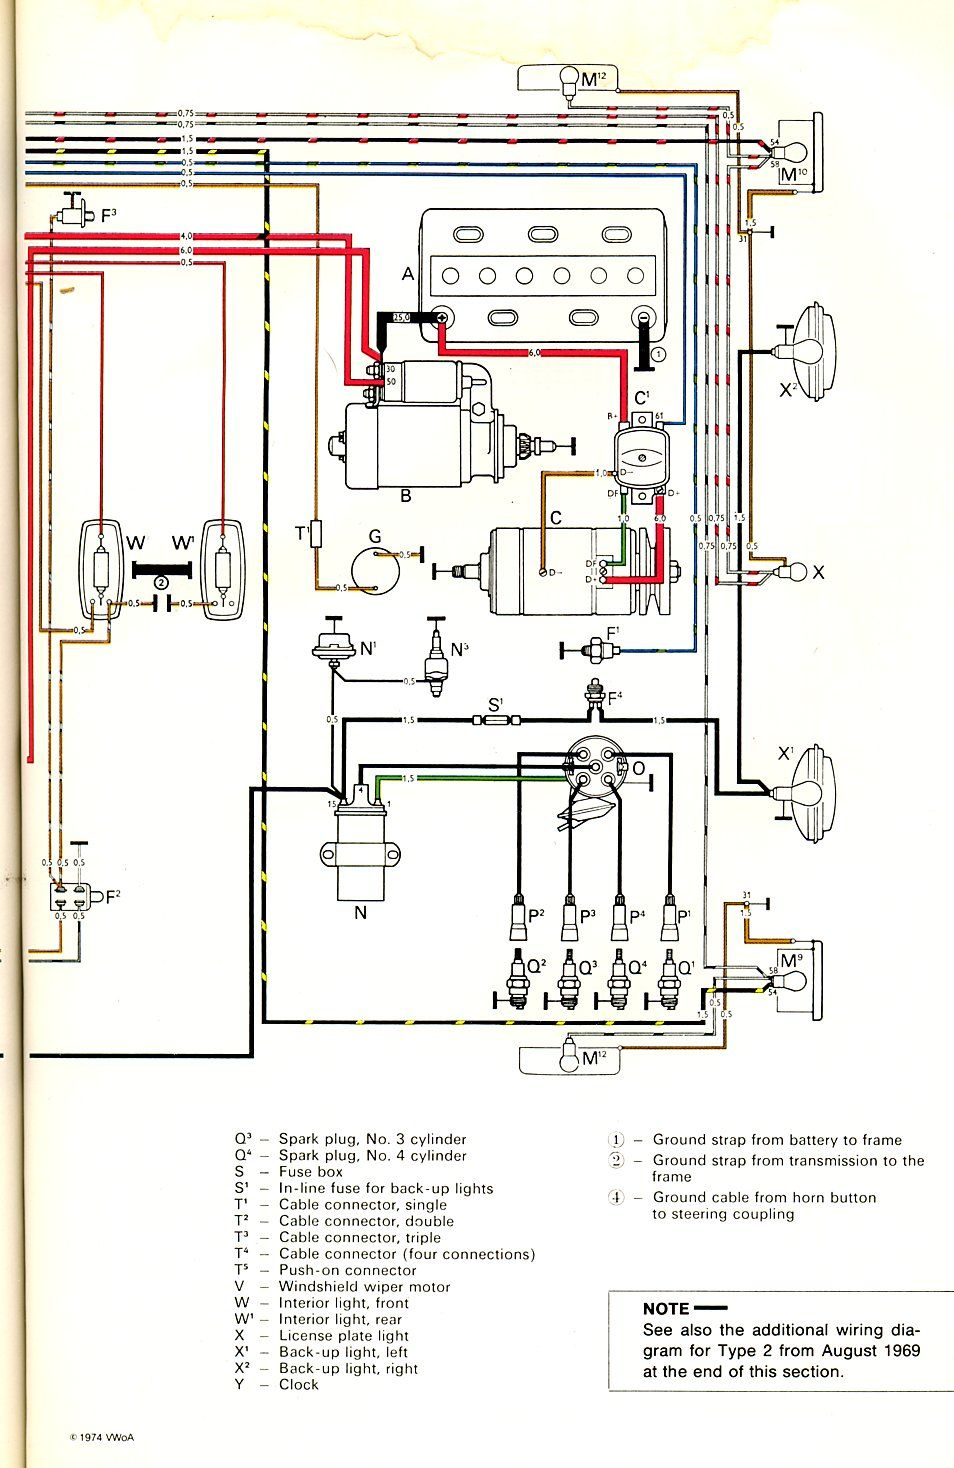 7f7e60b2694084a0dc0670654658616c electrical wiring drawing vw links pinterest electrical  at soozxer.org